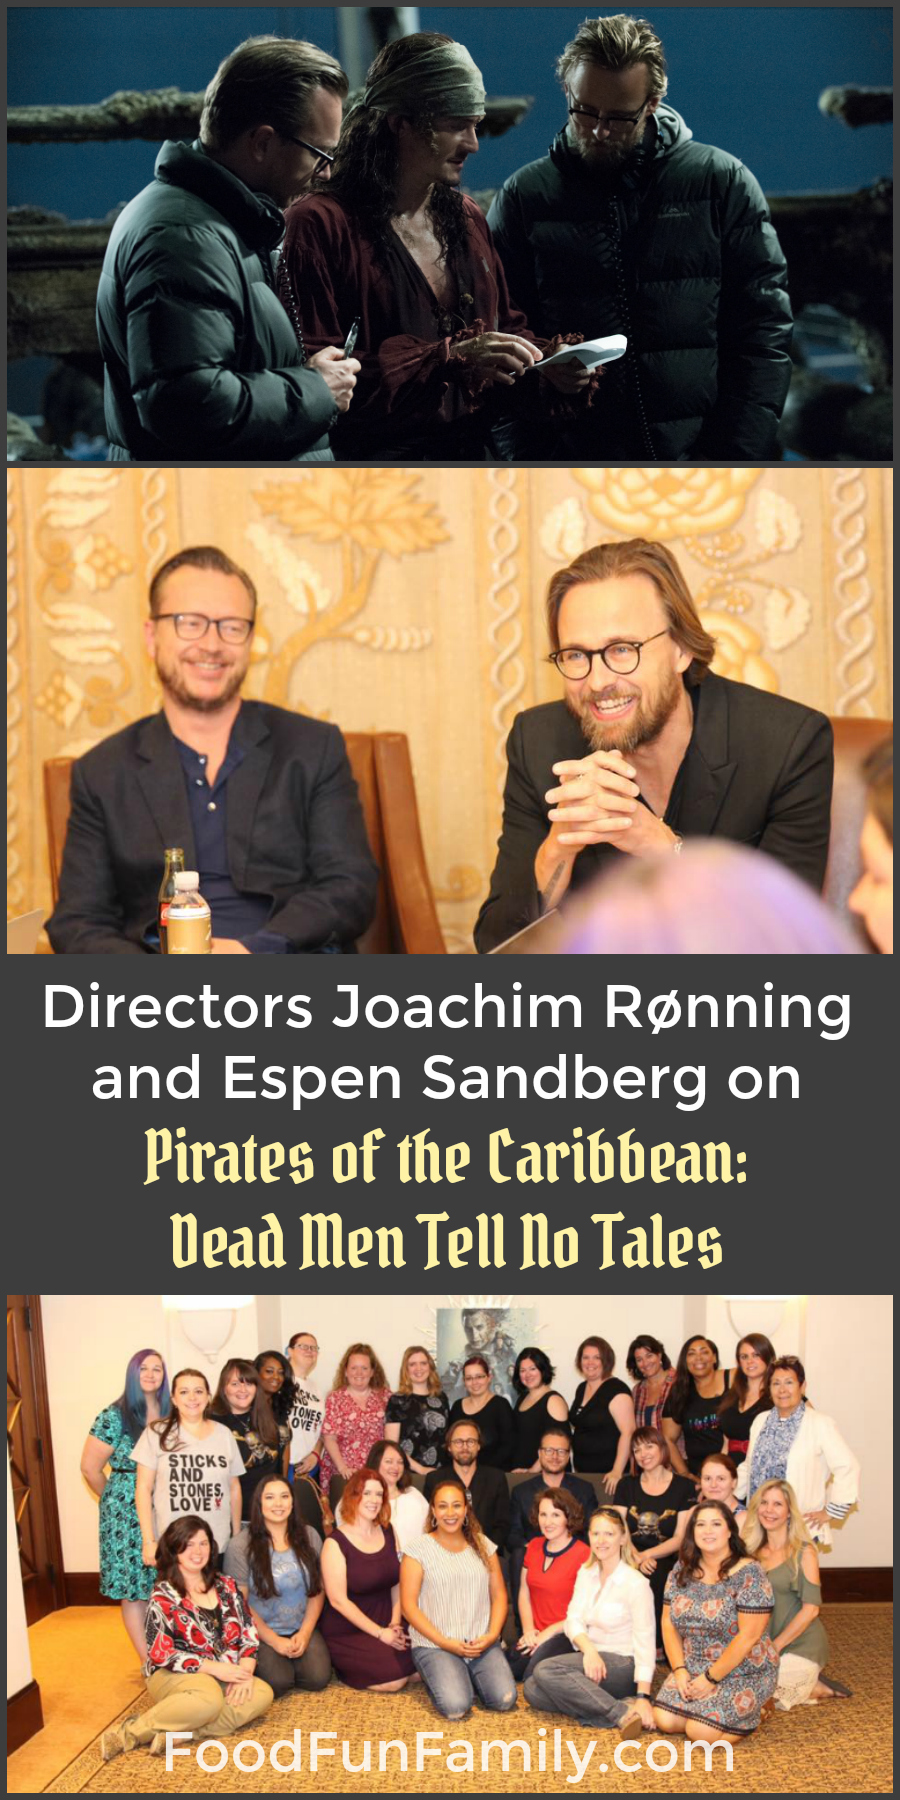 Directors Joachim Rønning and Espen Sandberg Talk About Working on Pirates of the Caribbean: Dead Men Tell No Tales